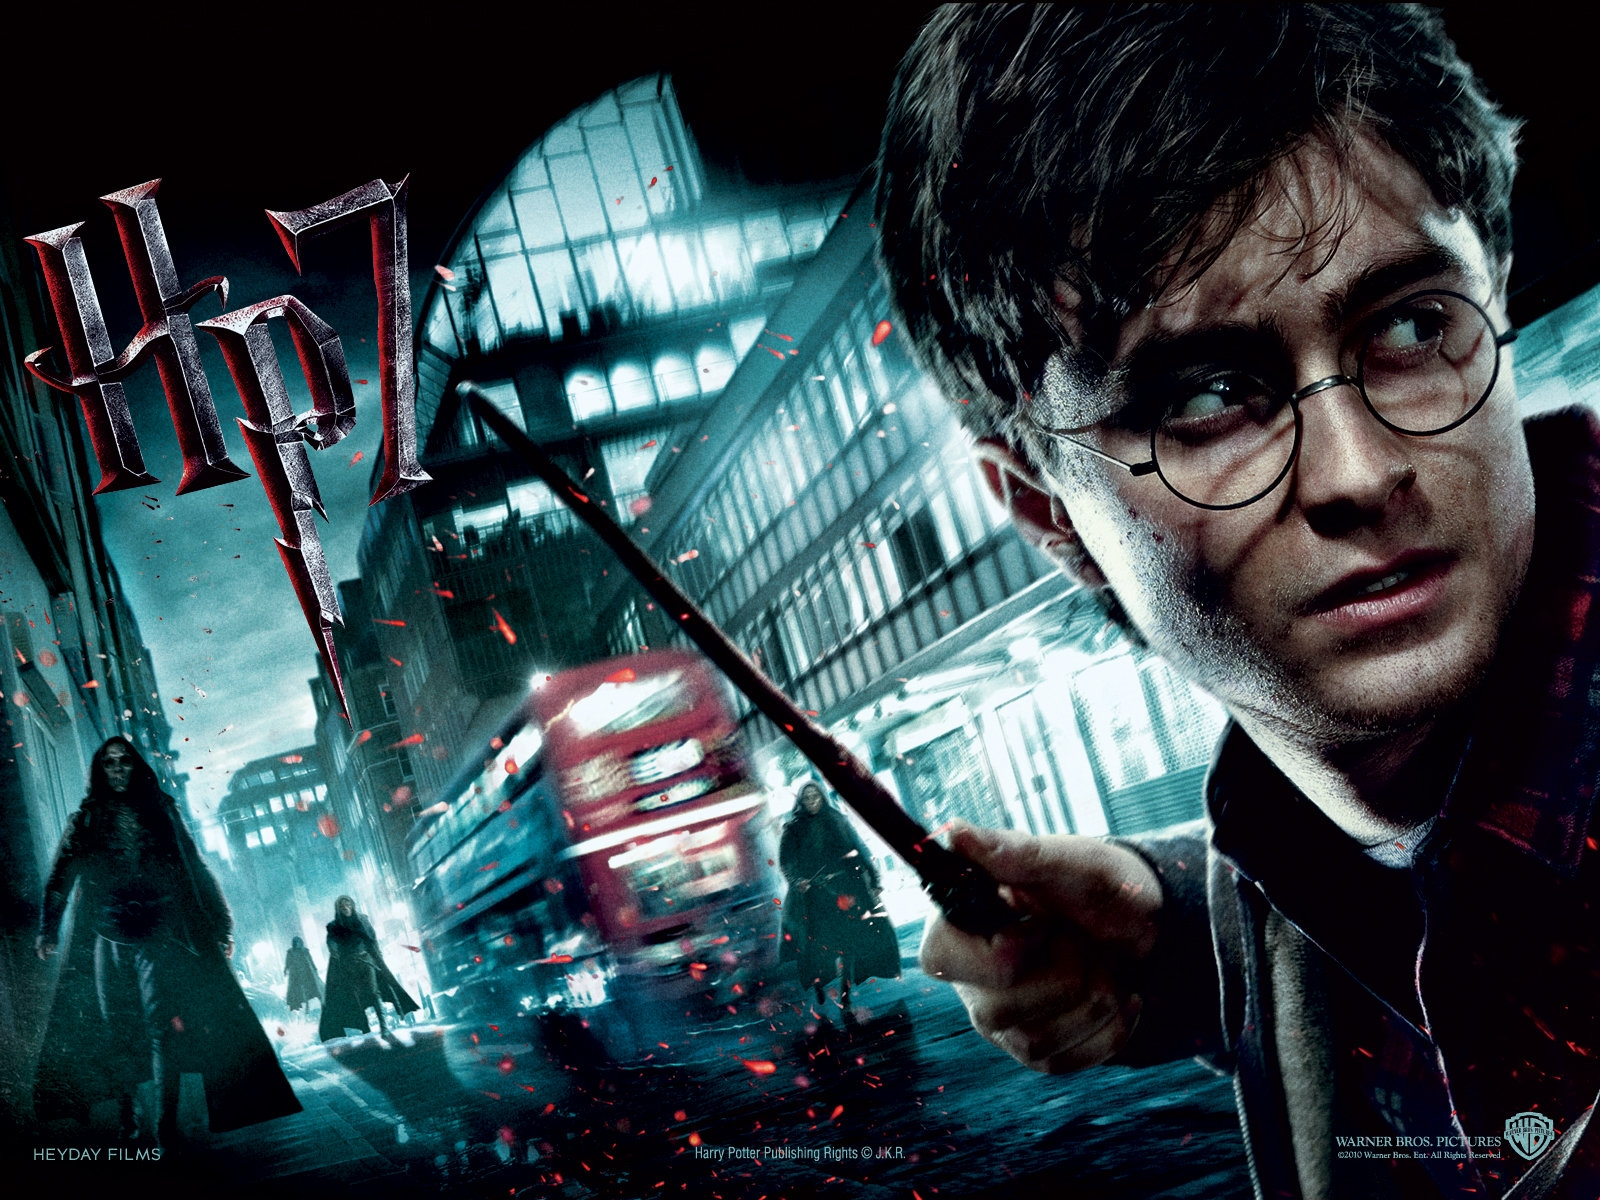 Harry Potter and the Deathly Hallows: Part 1, 2010